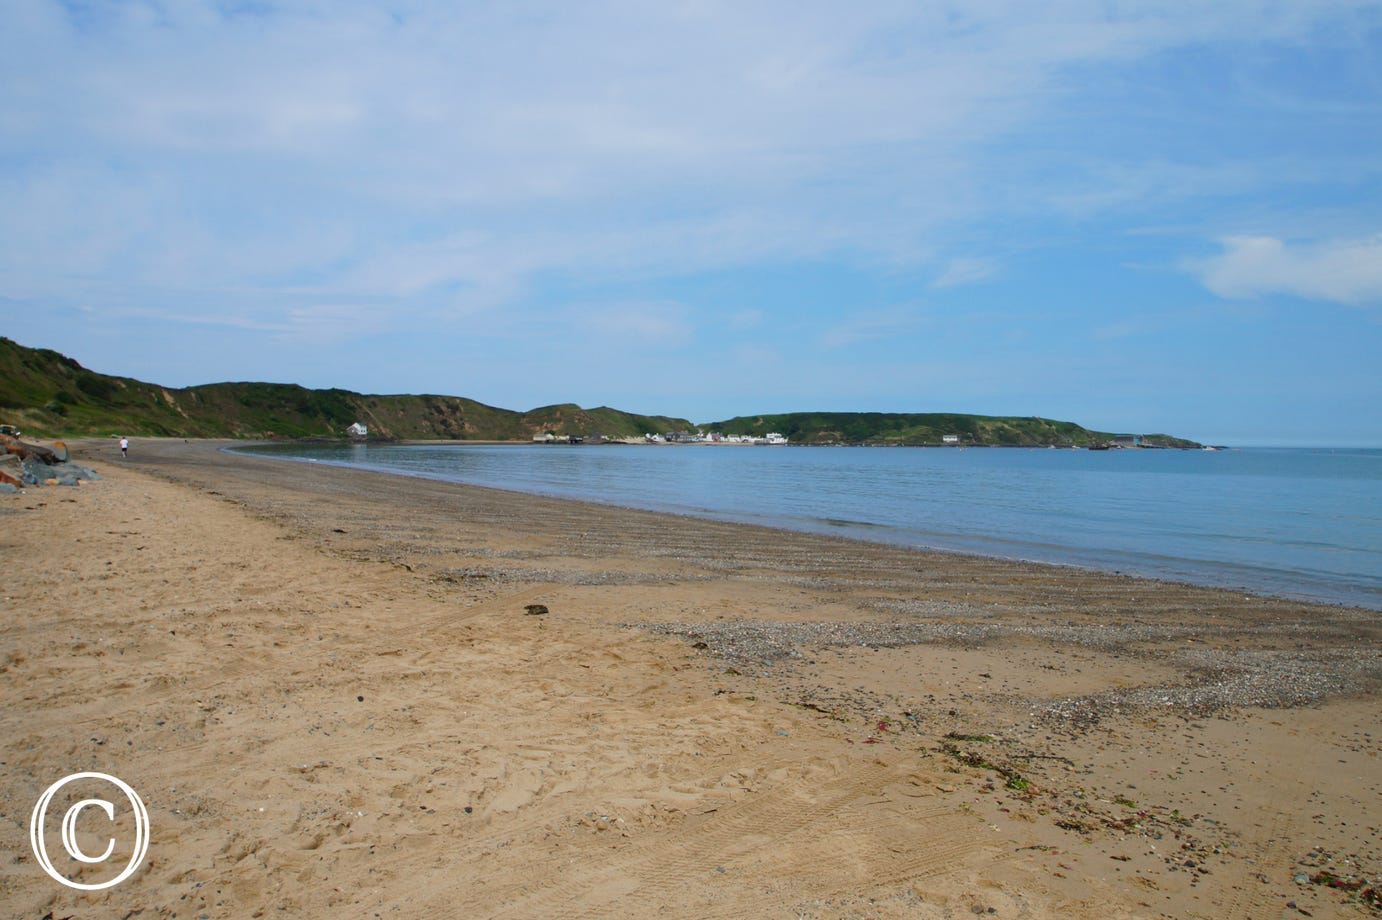 Morfa Nefyn beach leading to Ty Coch Inn at Porthdinllaen in the distance